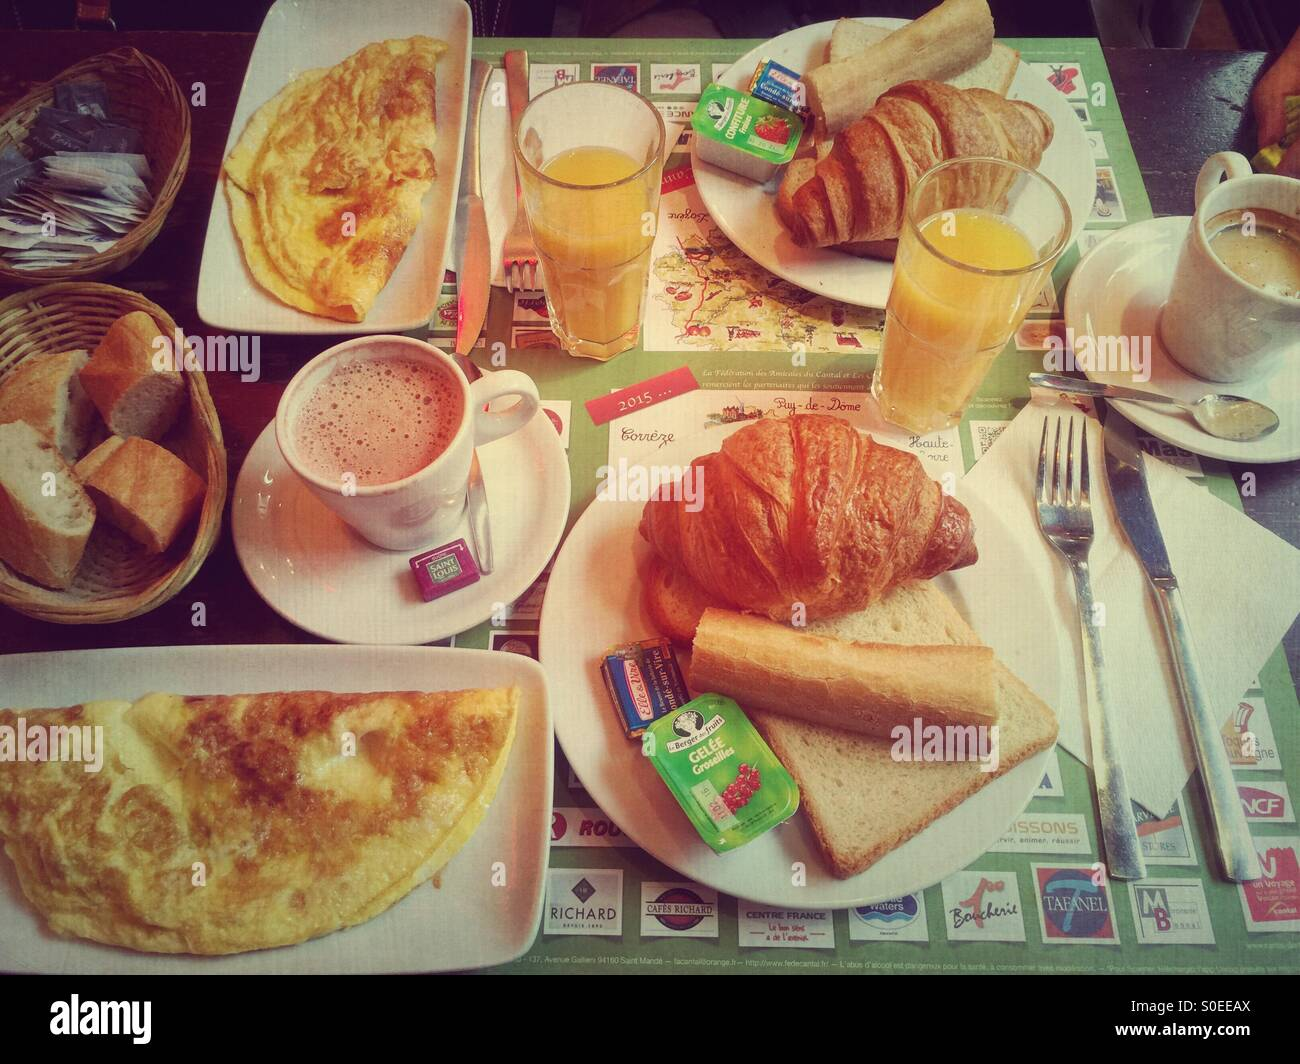 Typical French cafe breakfast at Le Musset brasserie in Paris, France. Croissant, coffee, hot chocolate, orange - Stock Image